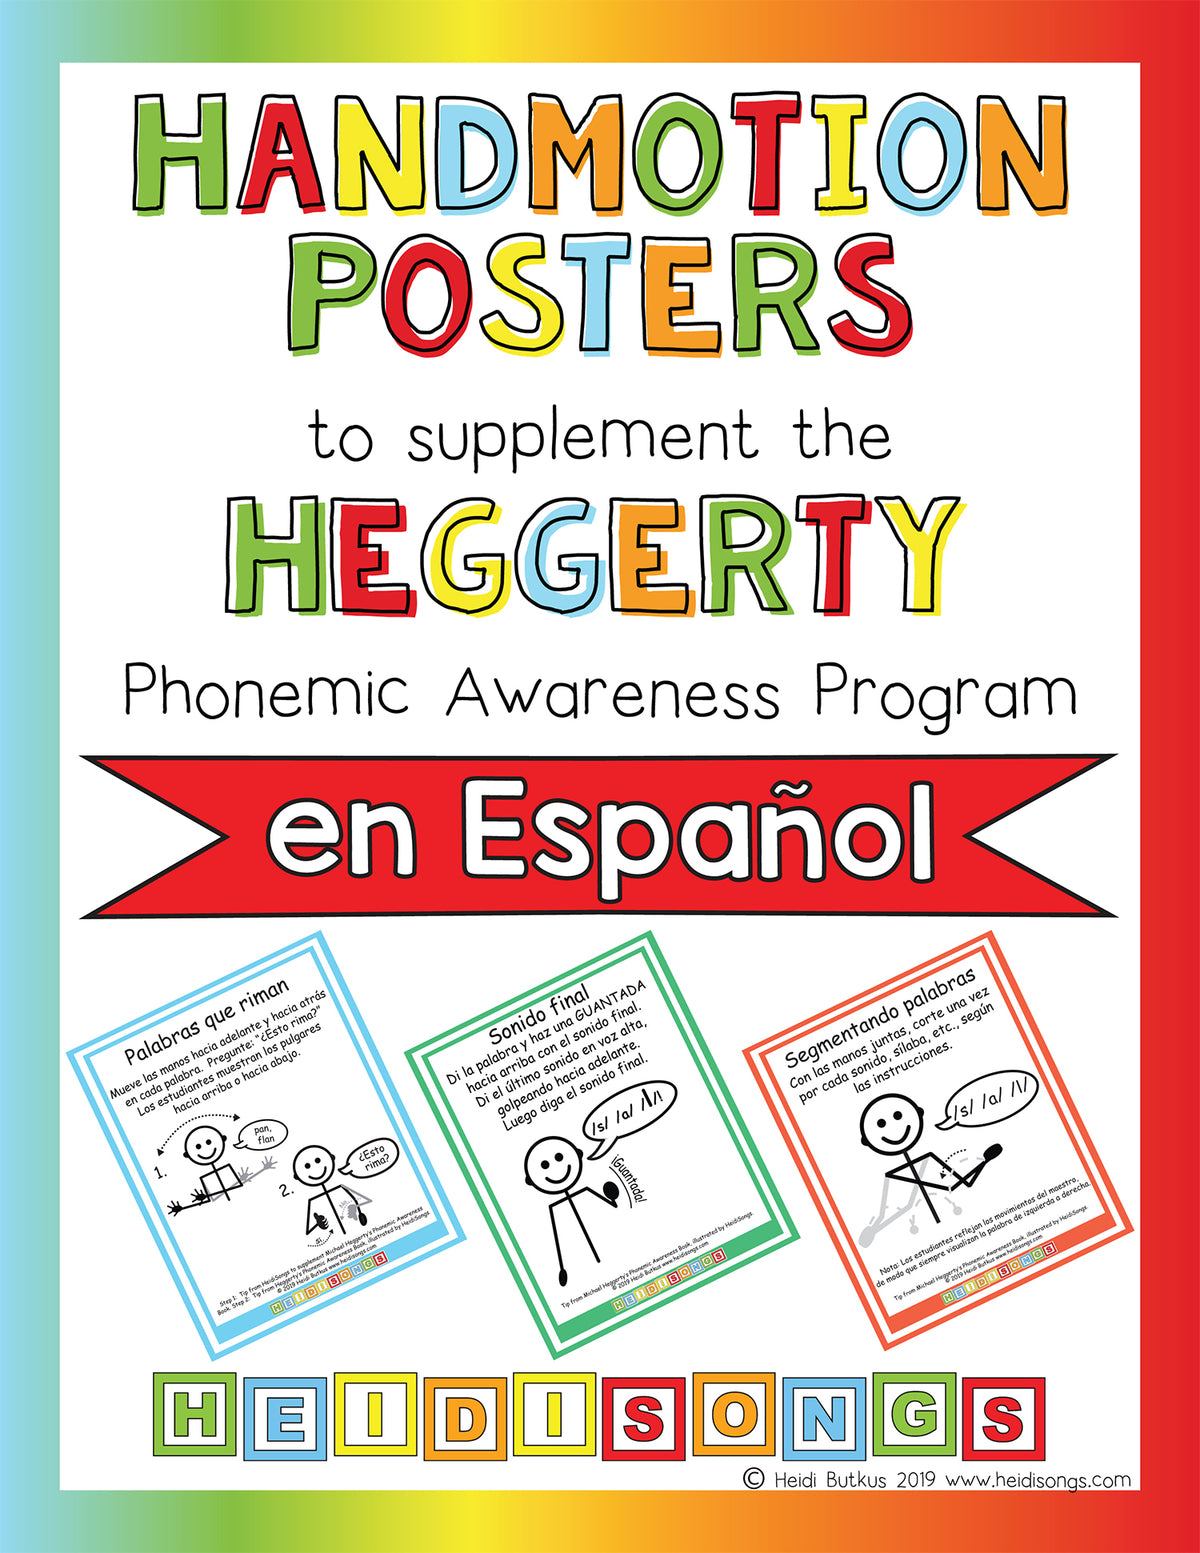 Handmotion Posters to Supplement the Heggerty Phonemic Awareness Program en Español